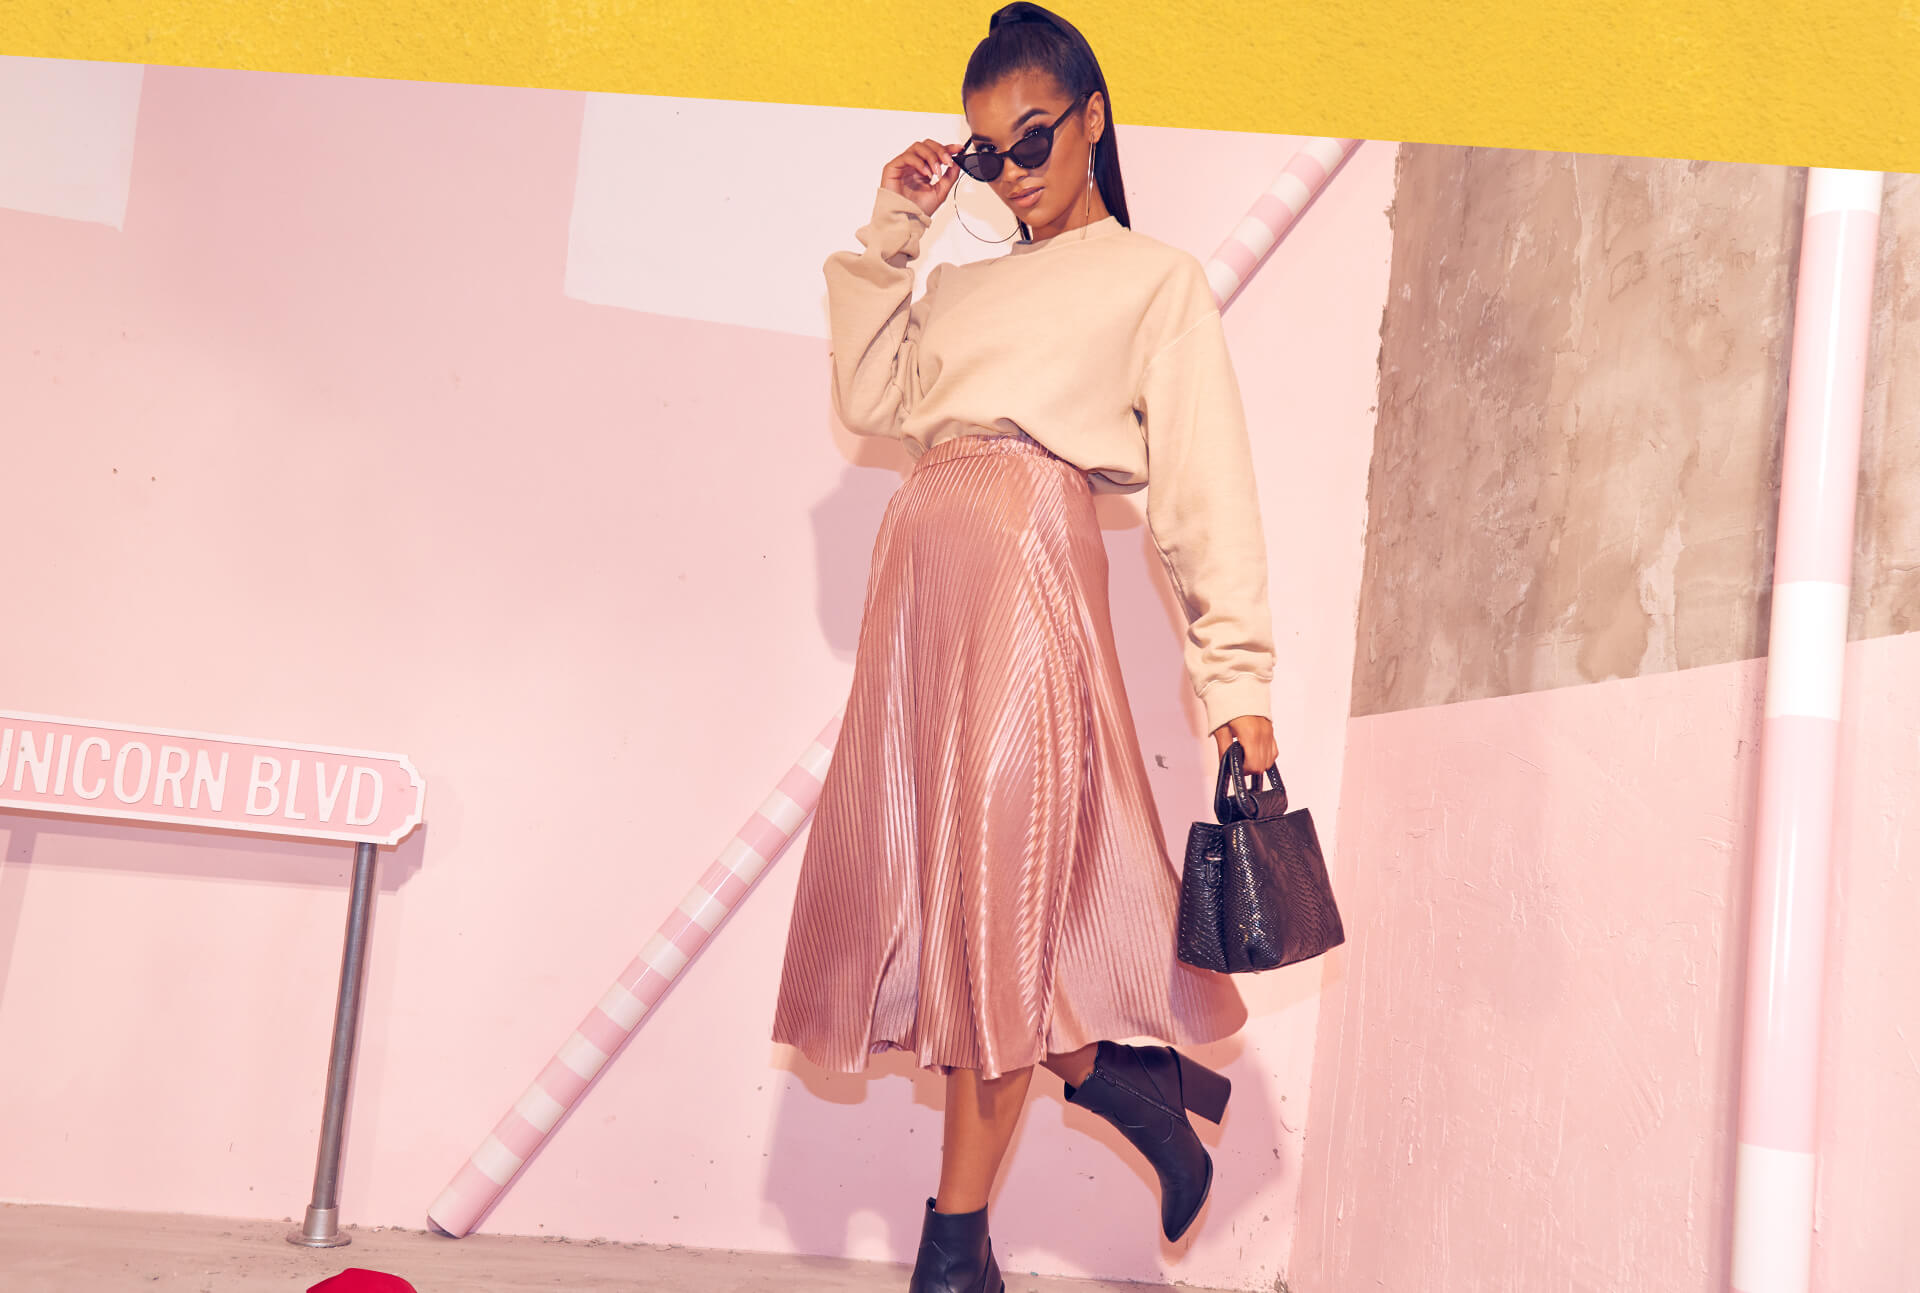 Workwear Shoot 5 Beige Sweater & Light Pink Midi Skirt Desktop